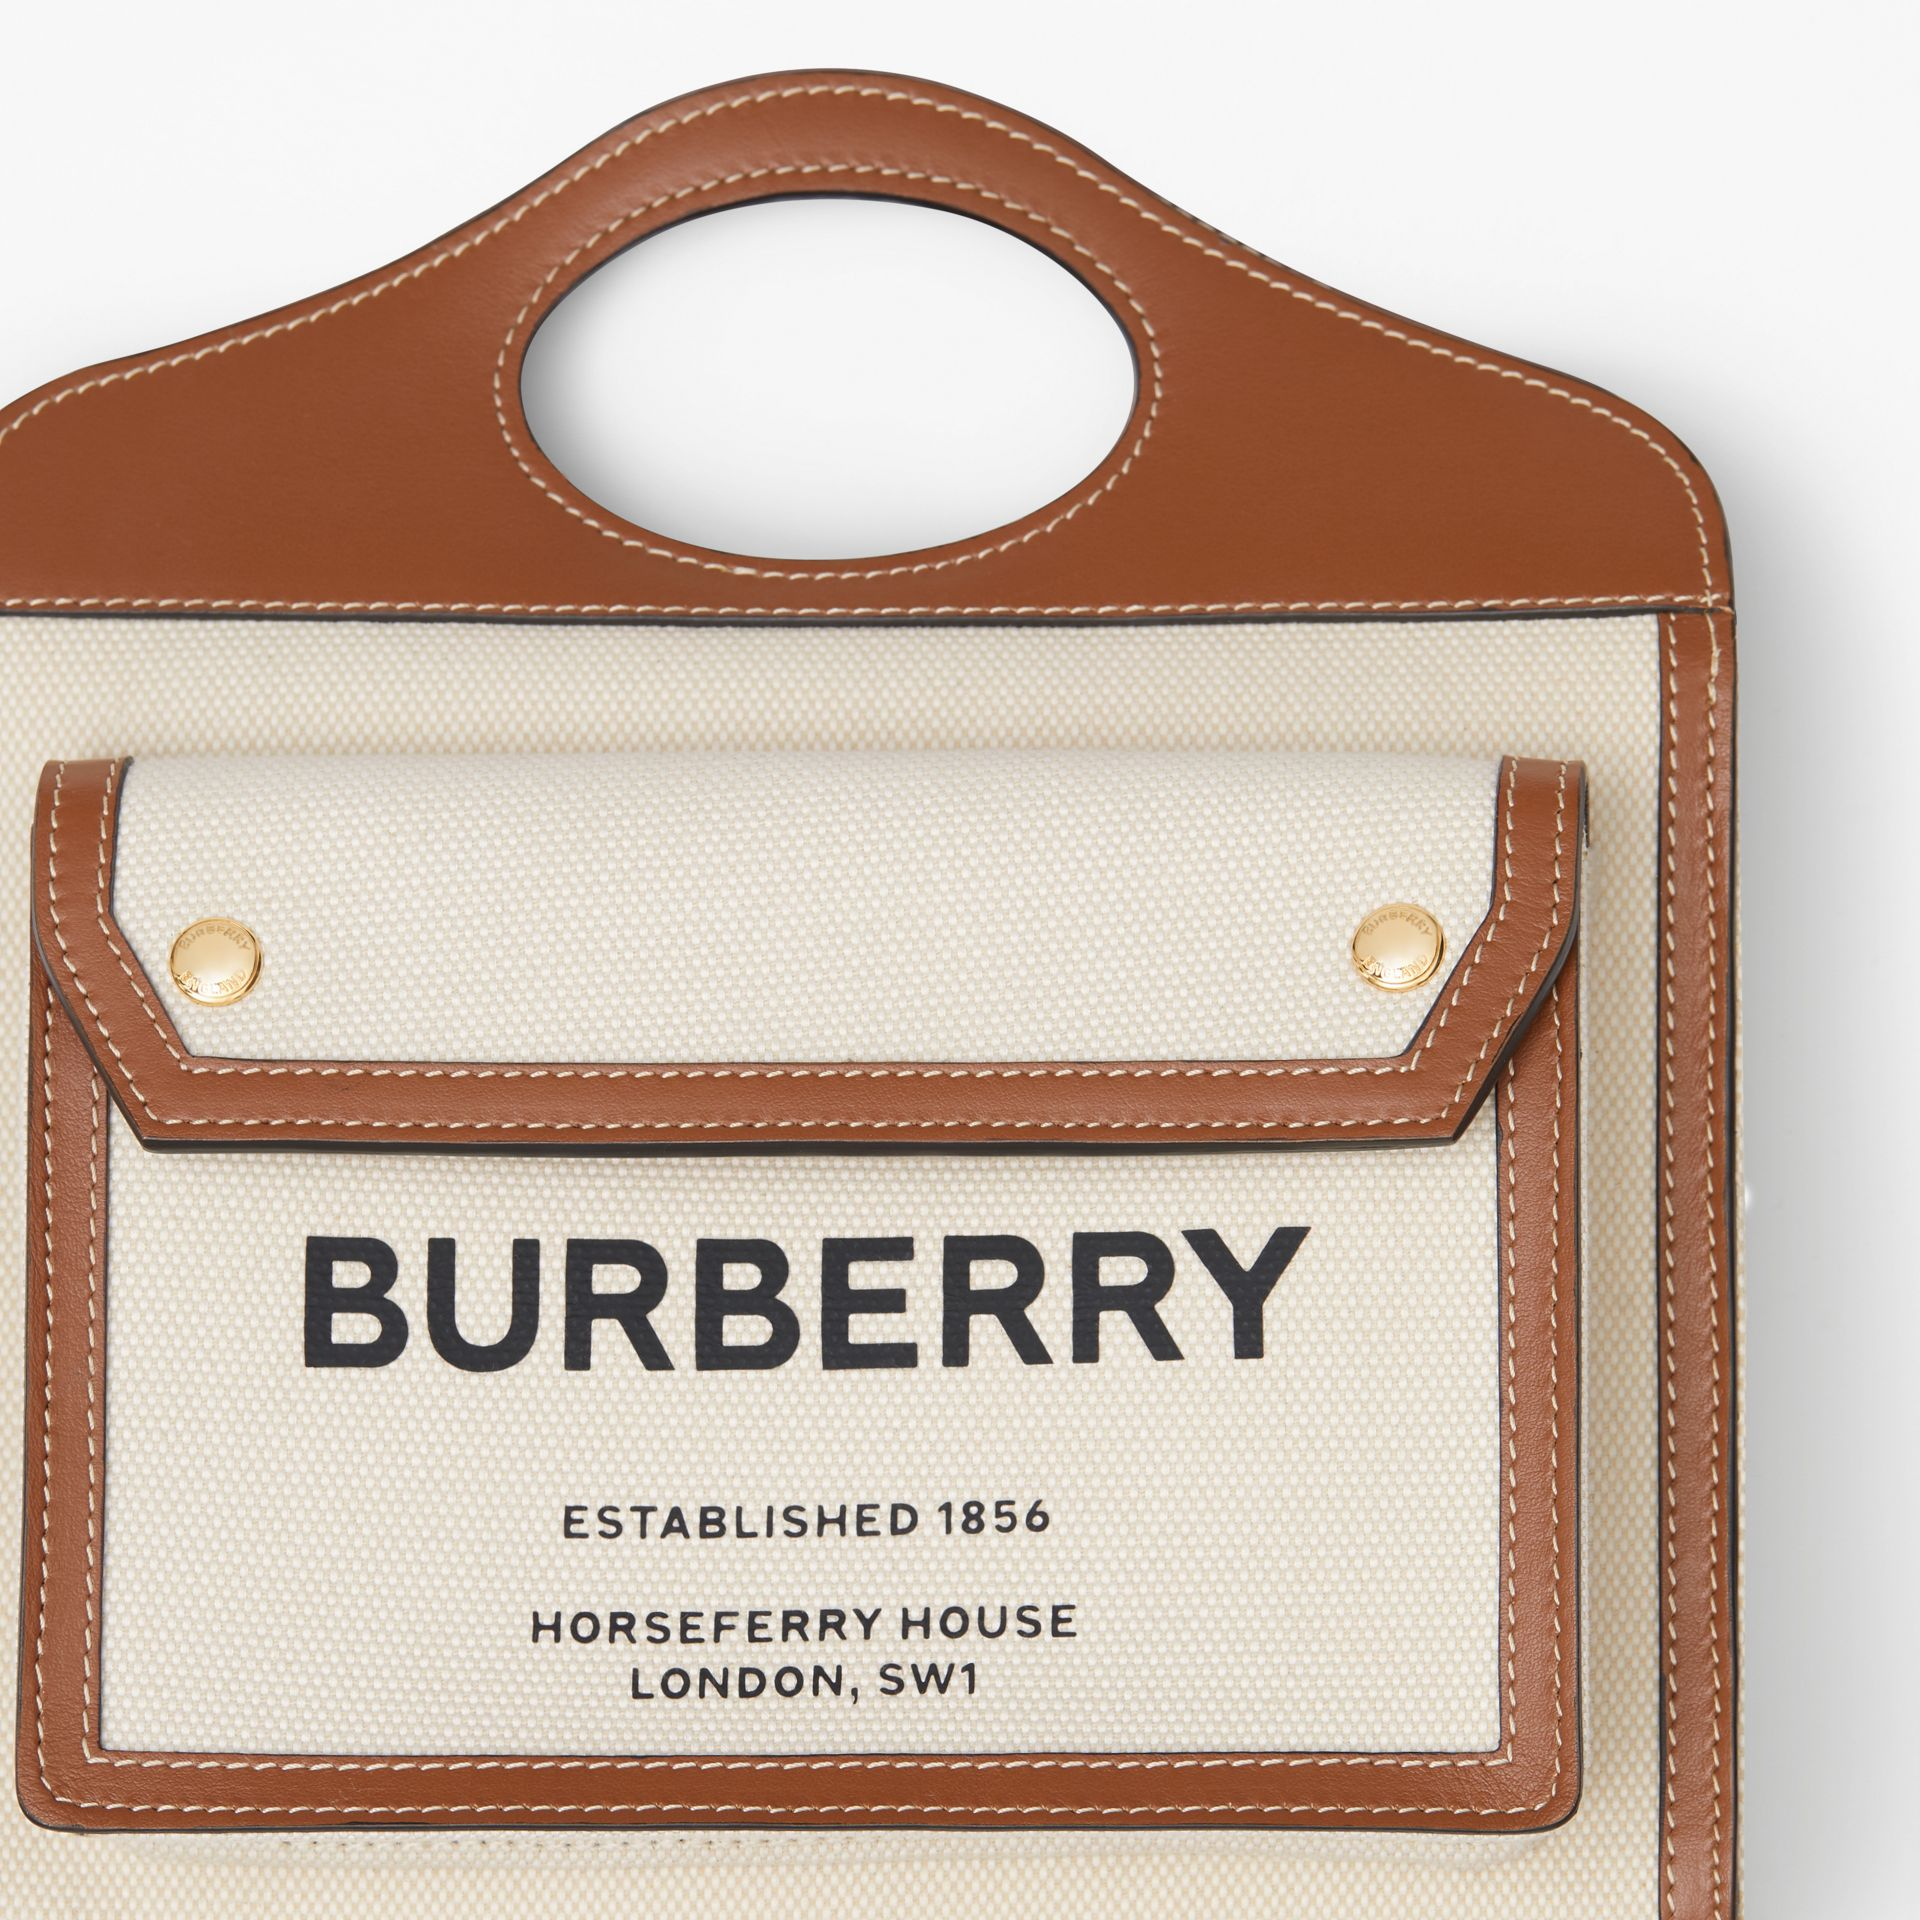 Mini Two-tone Canvas and Leather Pocket Bag in Natural/malt Brown - Women | Burberry - gallery image 1